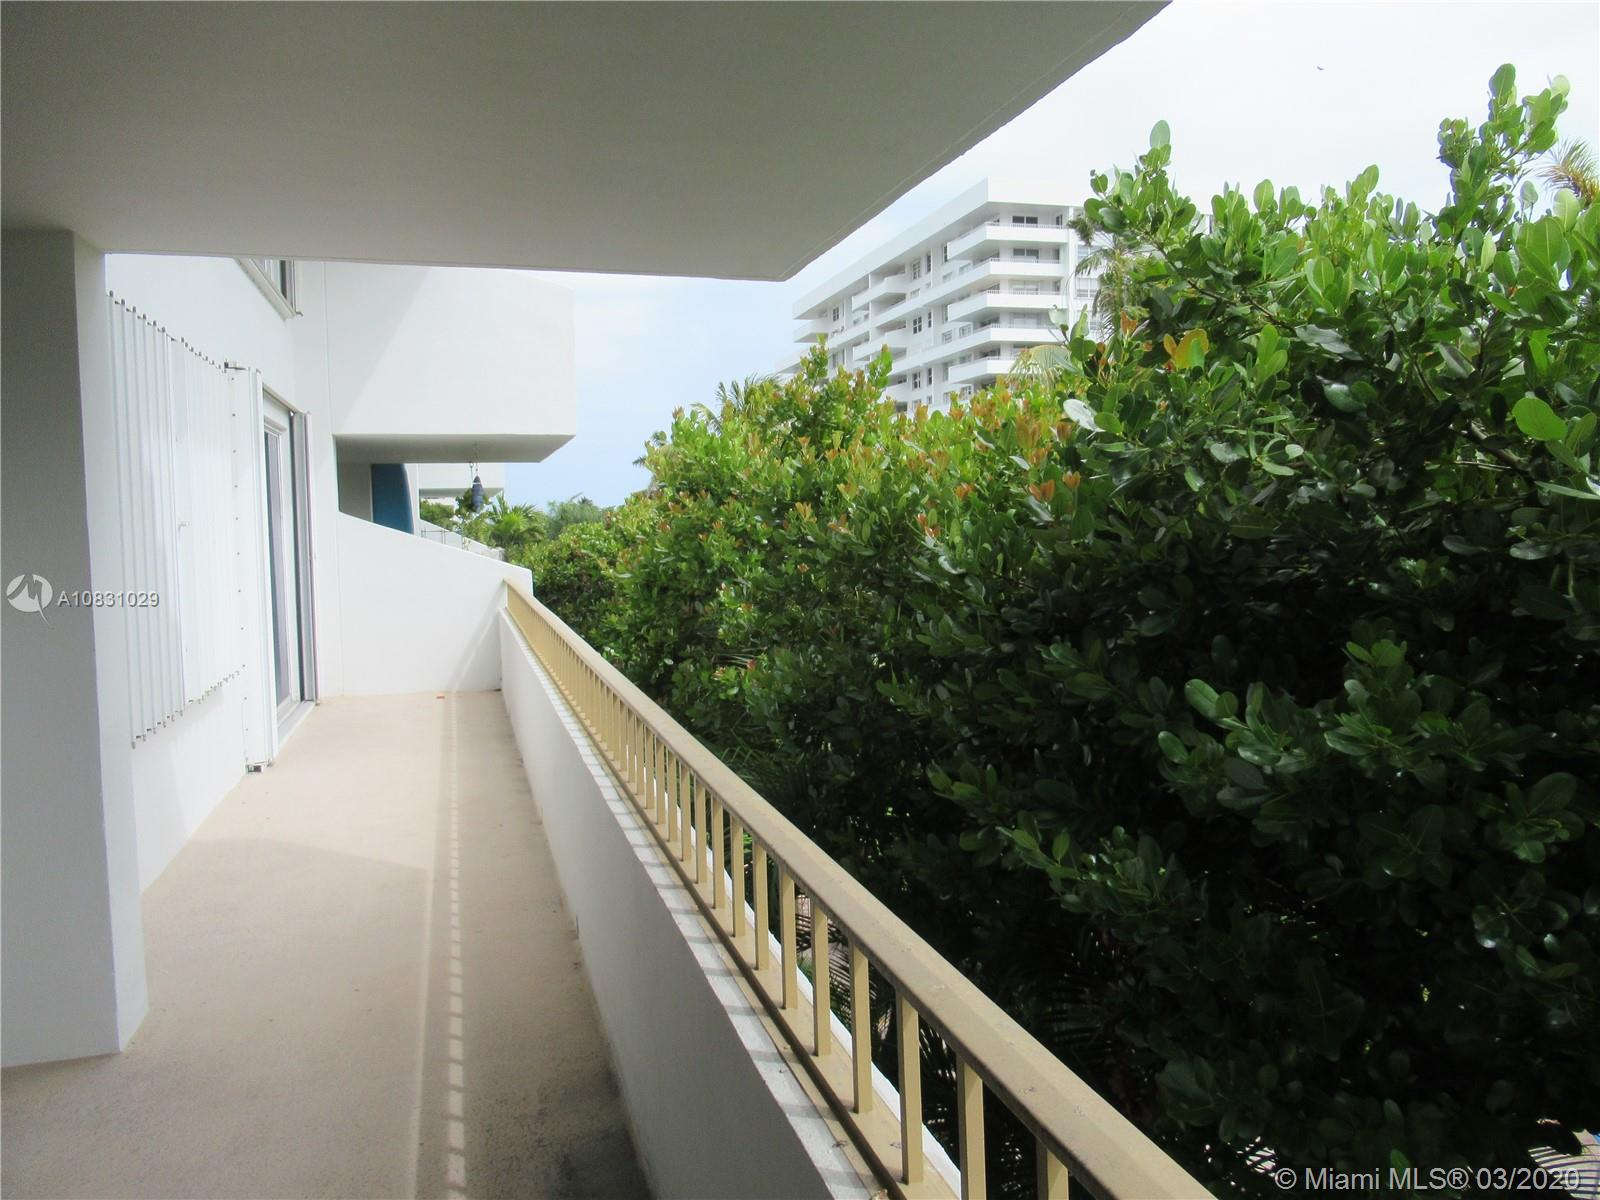 SOUTH SIDE Unit With Long Terrace, Which Runs The Full Width Of The Apartment.    Tropical View Over Gardens With A Peek Of The Ocean & Pool!    Kitchen And Bathrooms Have Been Updated!    Plenty Of Light & Sunshine!    Priced To Sell!